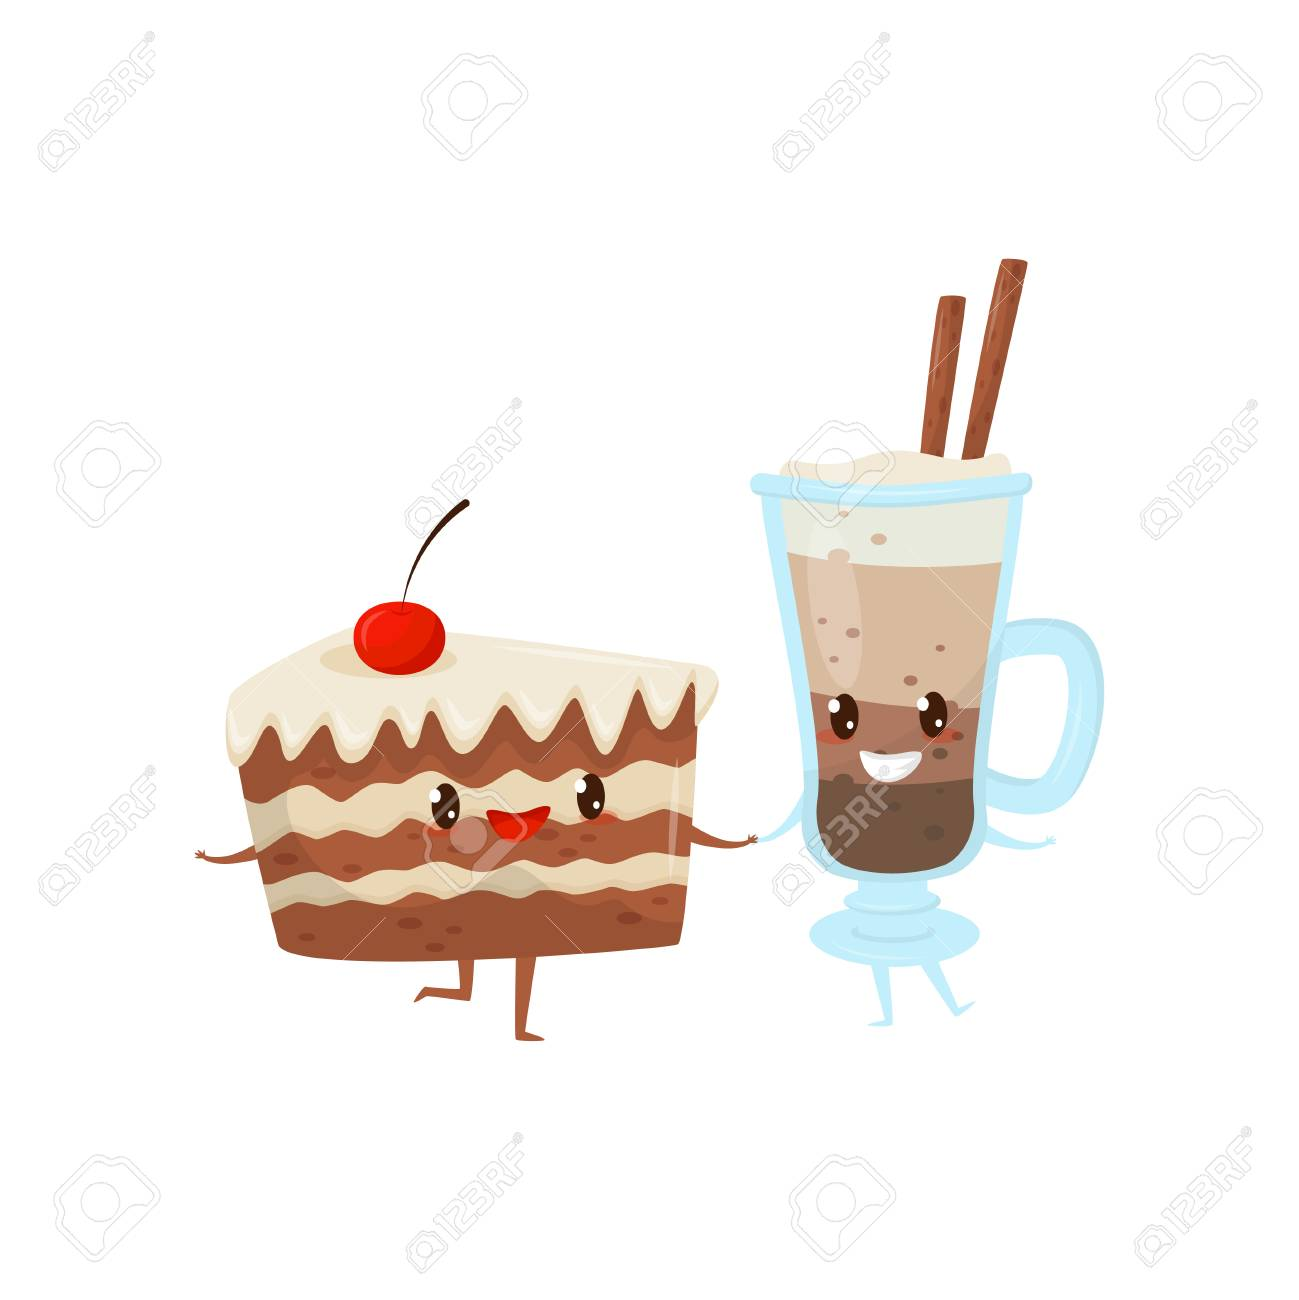 piece of cake and cocoa drink are friends forever cute funny food